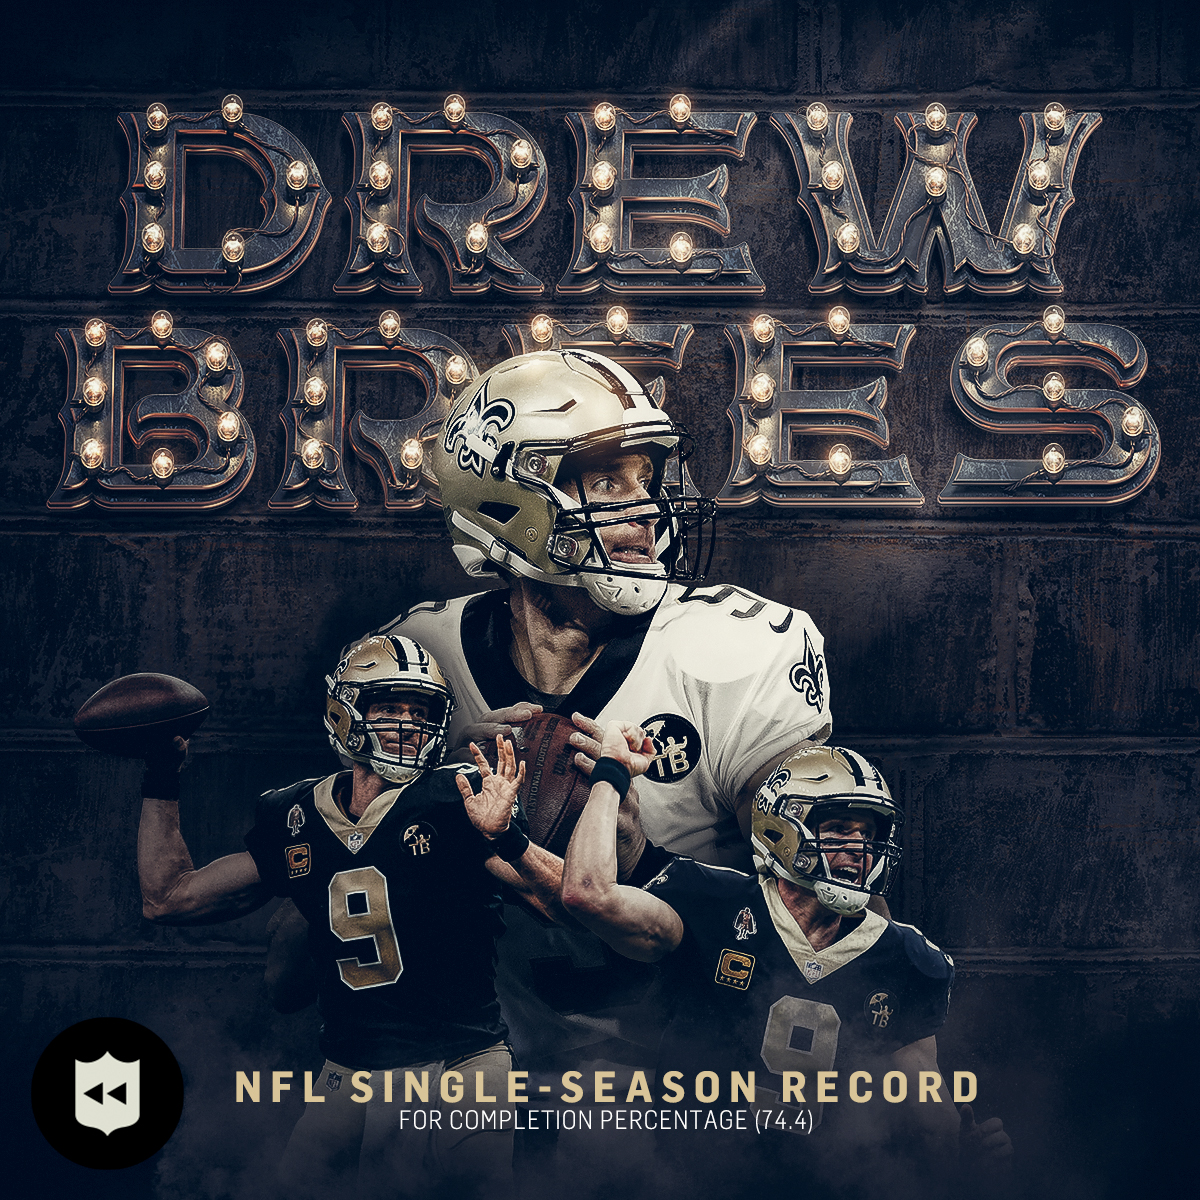 Brees_CompletionPCT_001.jpg